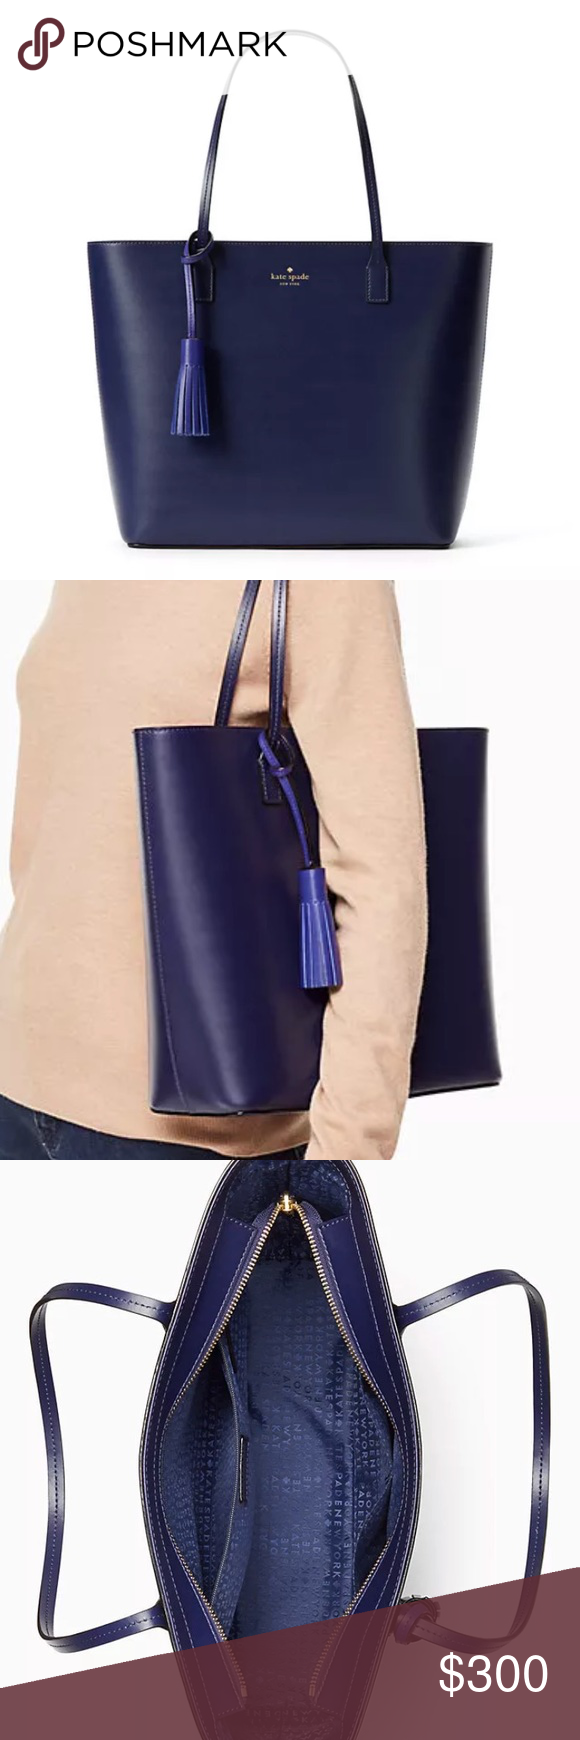 Kate spade wright place Karla dk blue tote nwt Brand new beautiful dark  blue shoulder bag. Zips shut with straps and tassel. Limited edition! 948a0ed6b9fdd